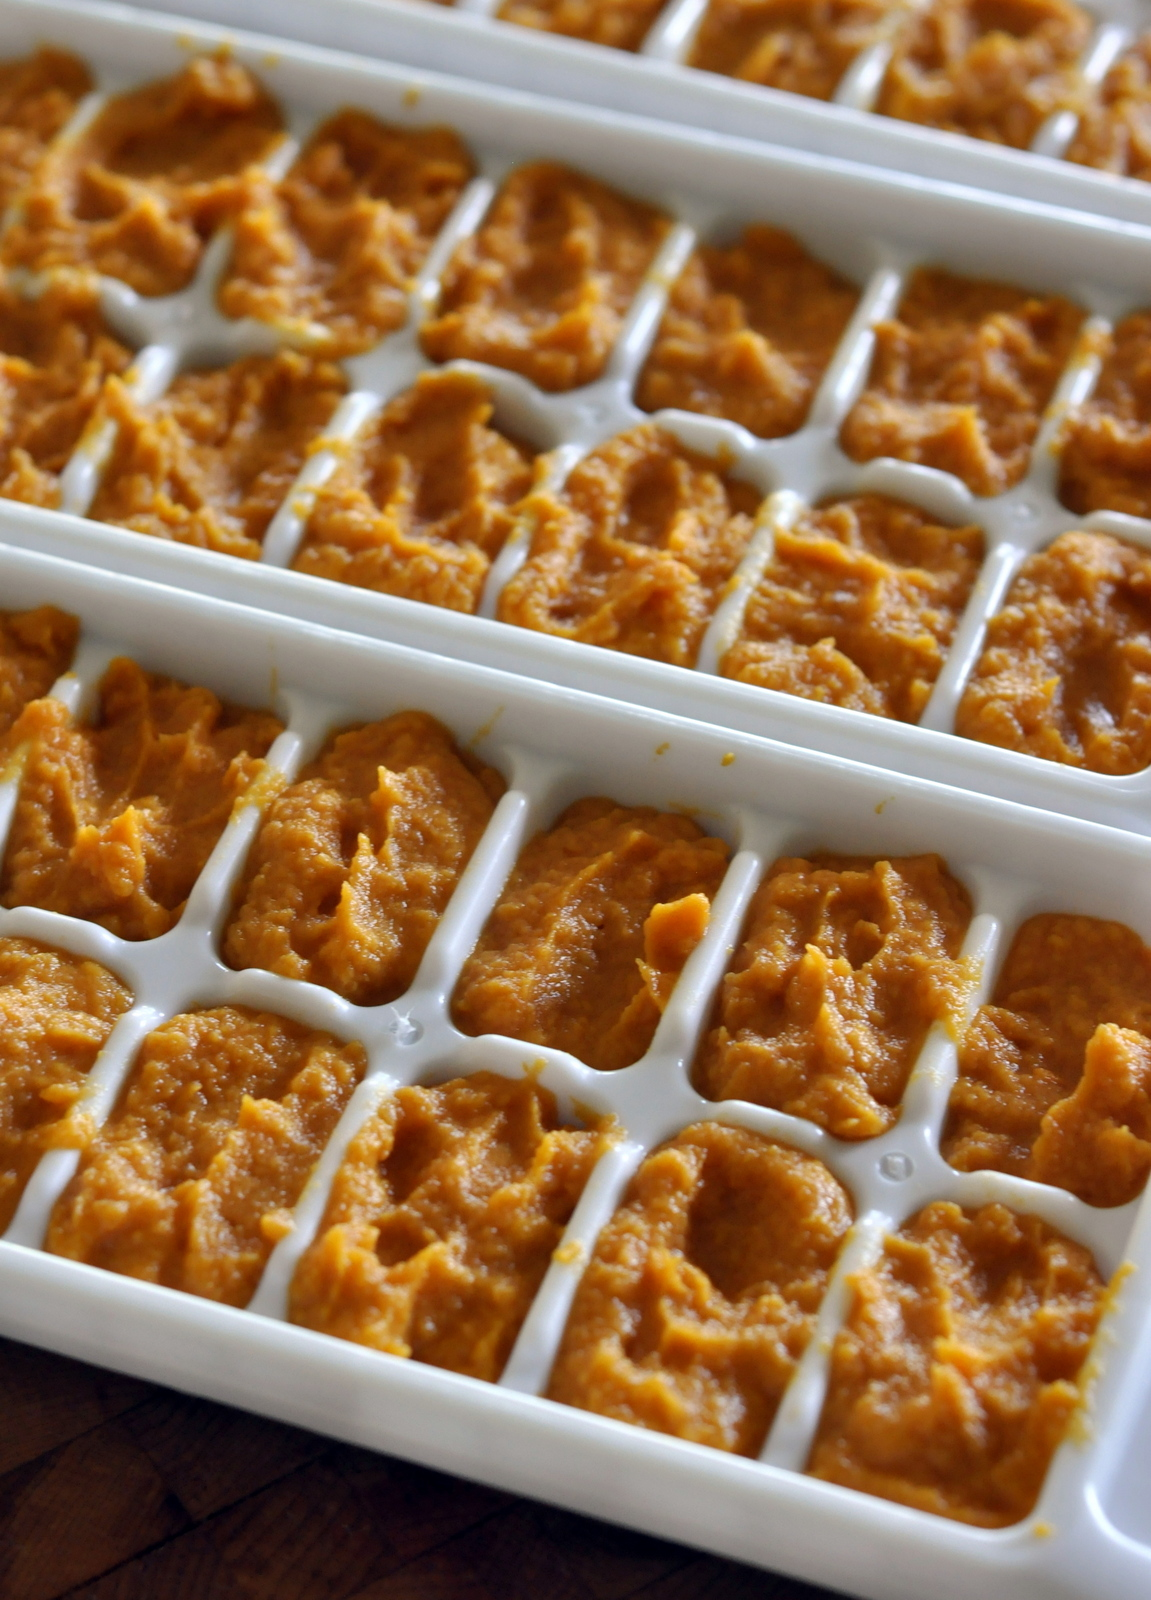 How To: Make and Freeze Homemade Baby Food {Sweet Potato Purée}